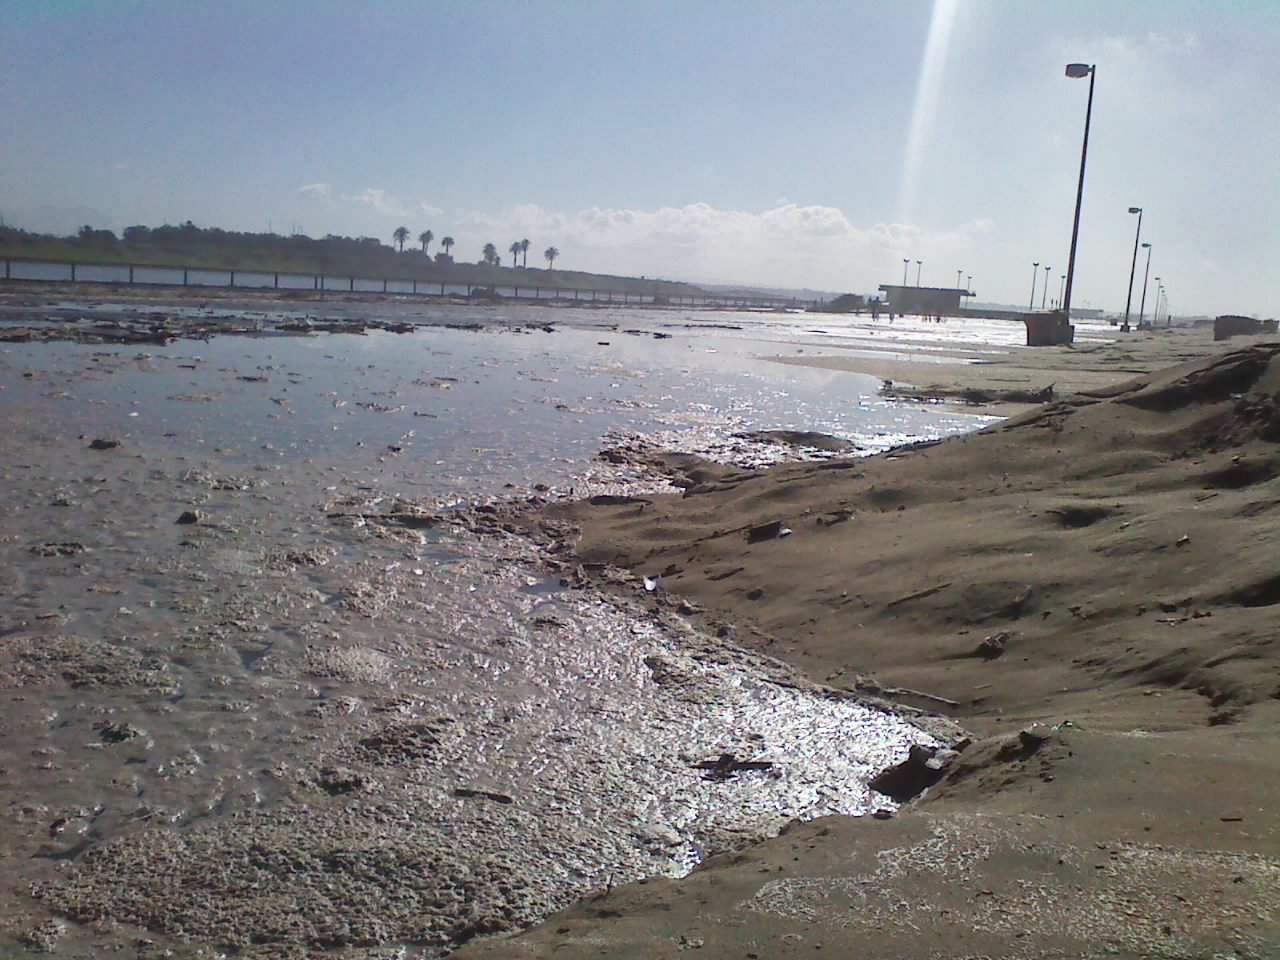 The Bolsa Chica State Beach bike path, where I normally run